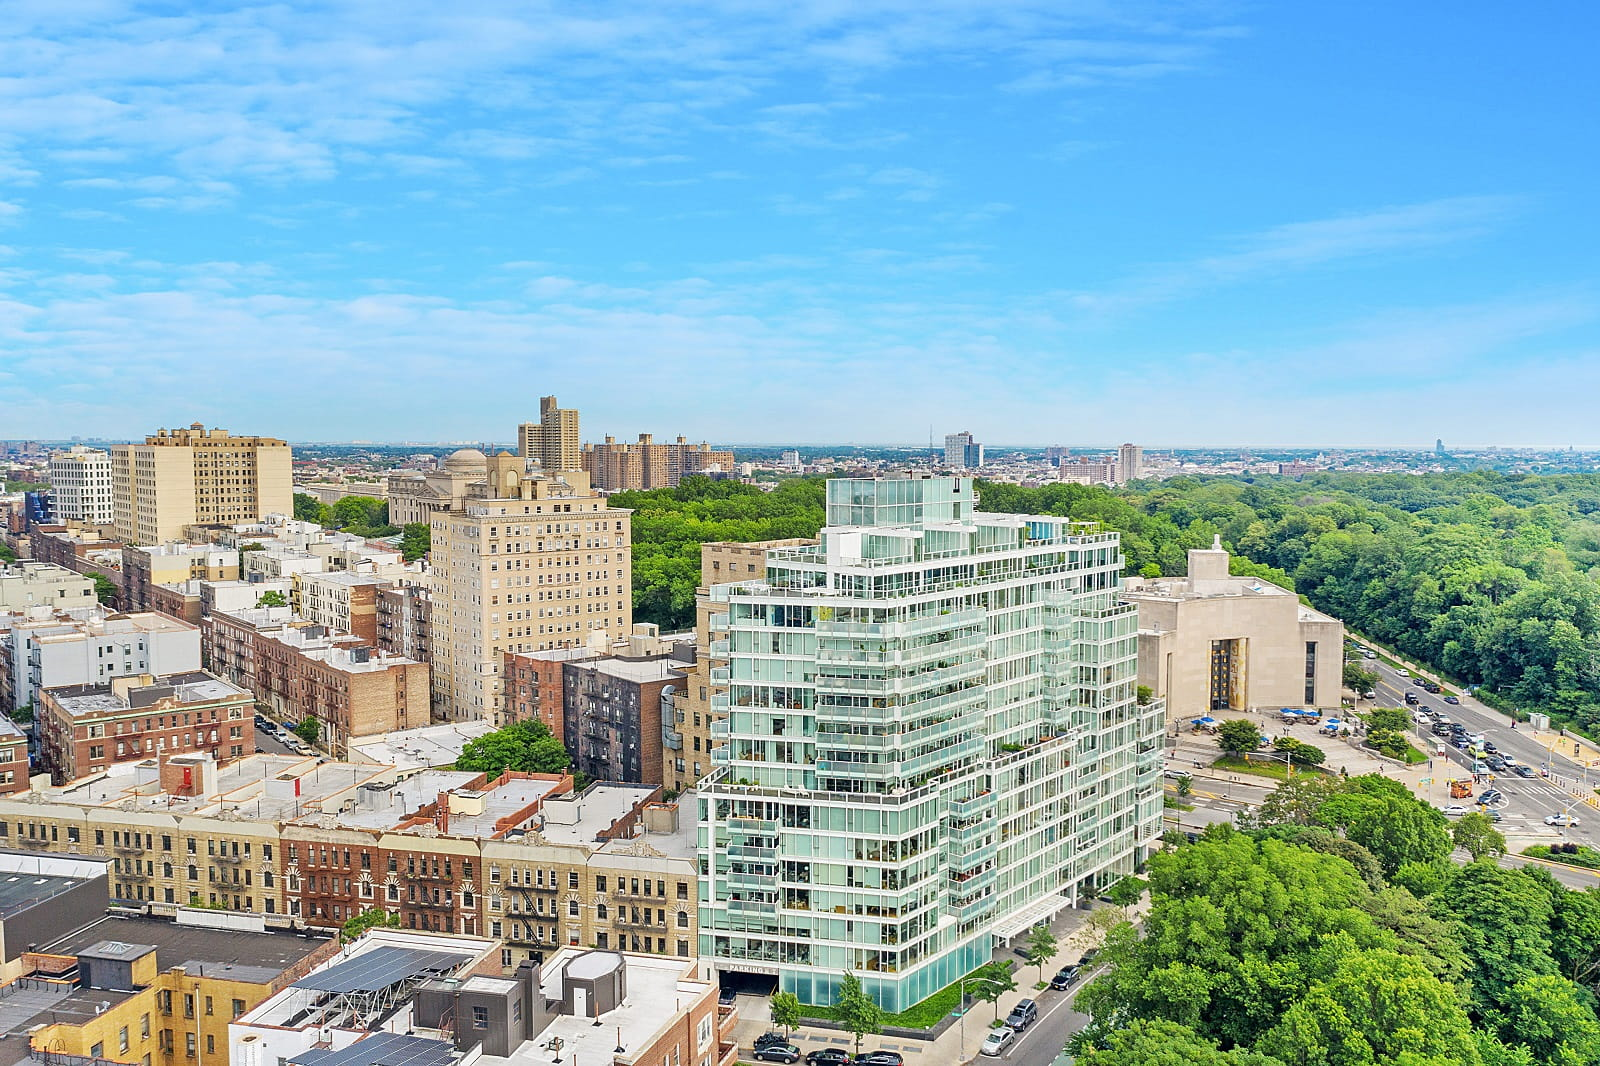 Real Estate Photography in Brooklyn - NY - USA - Aerial View